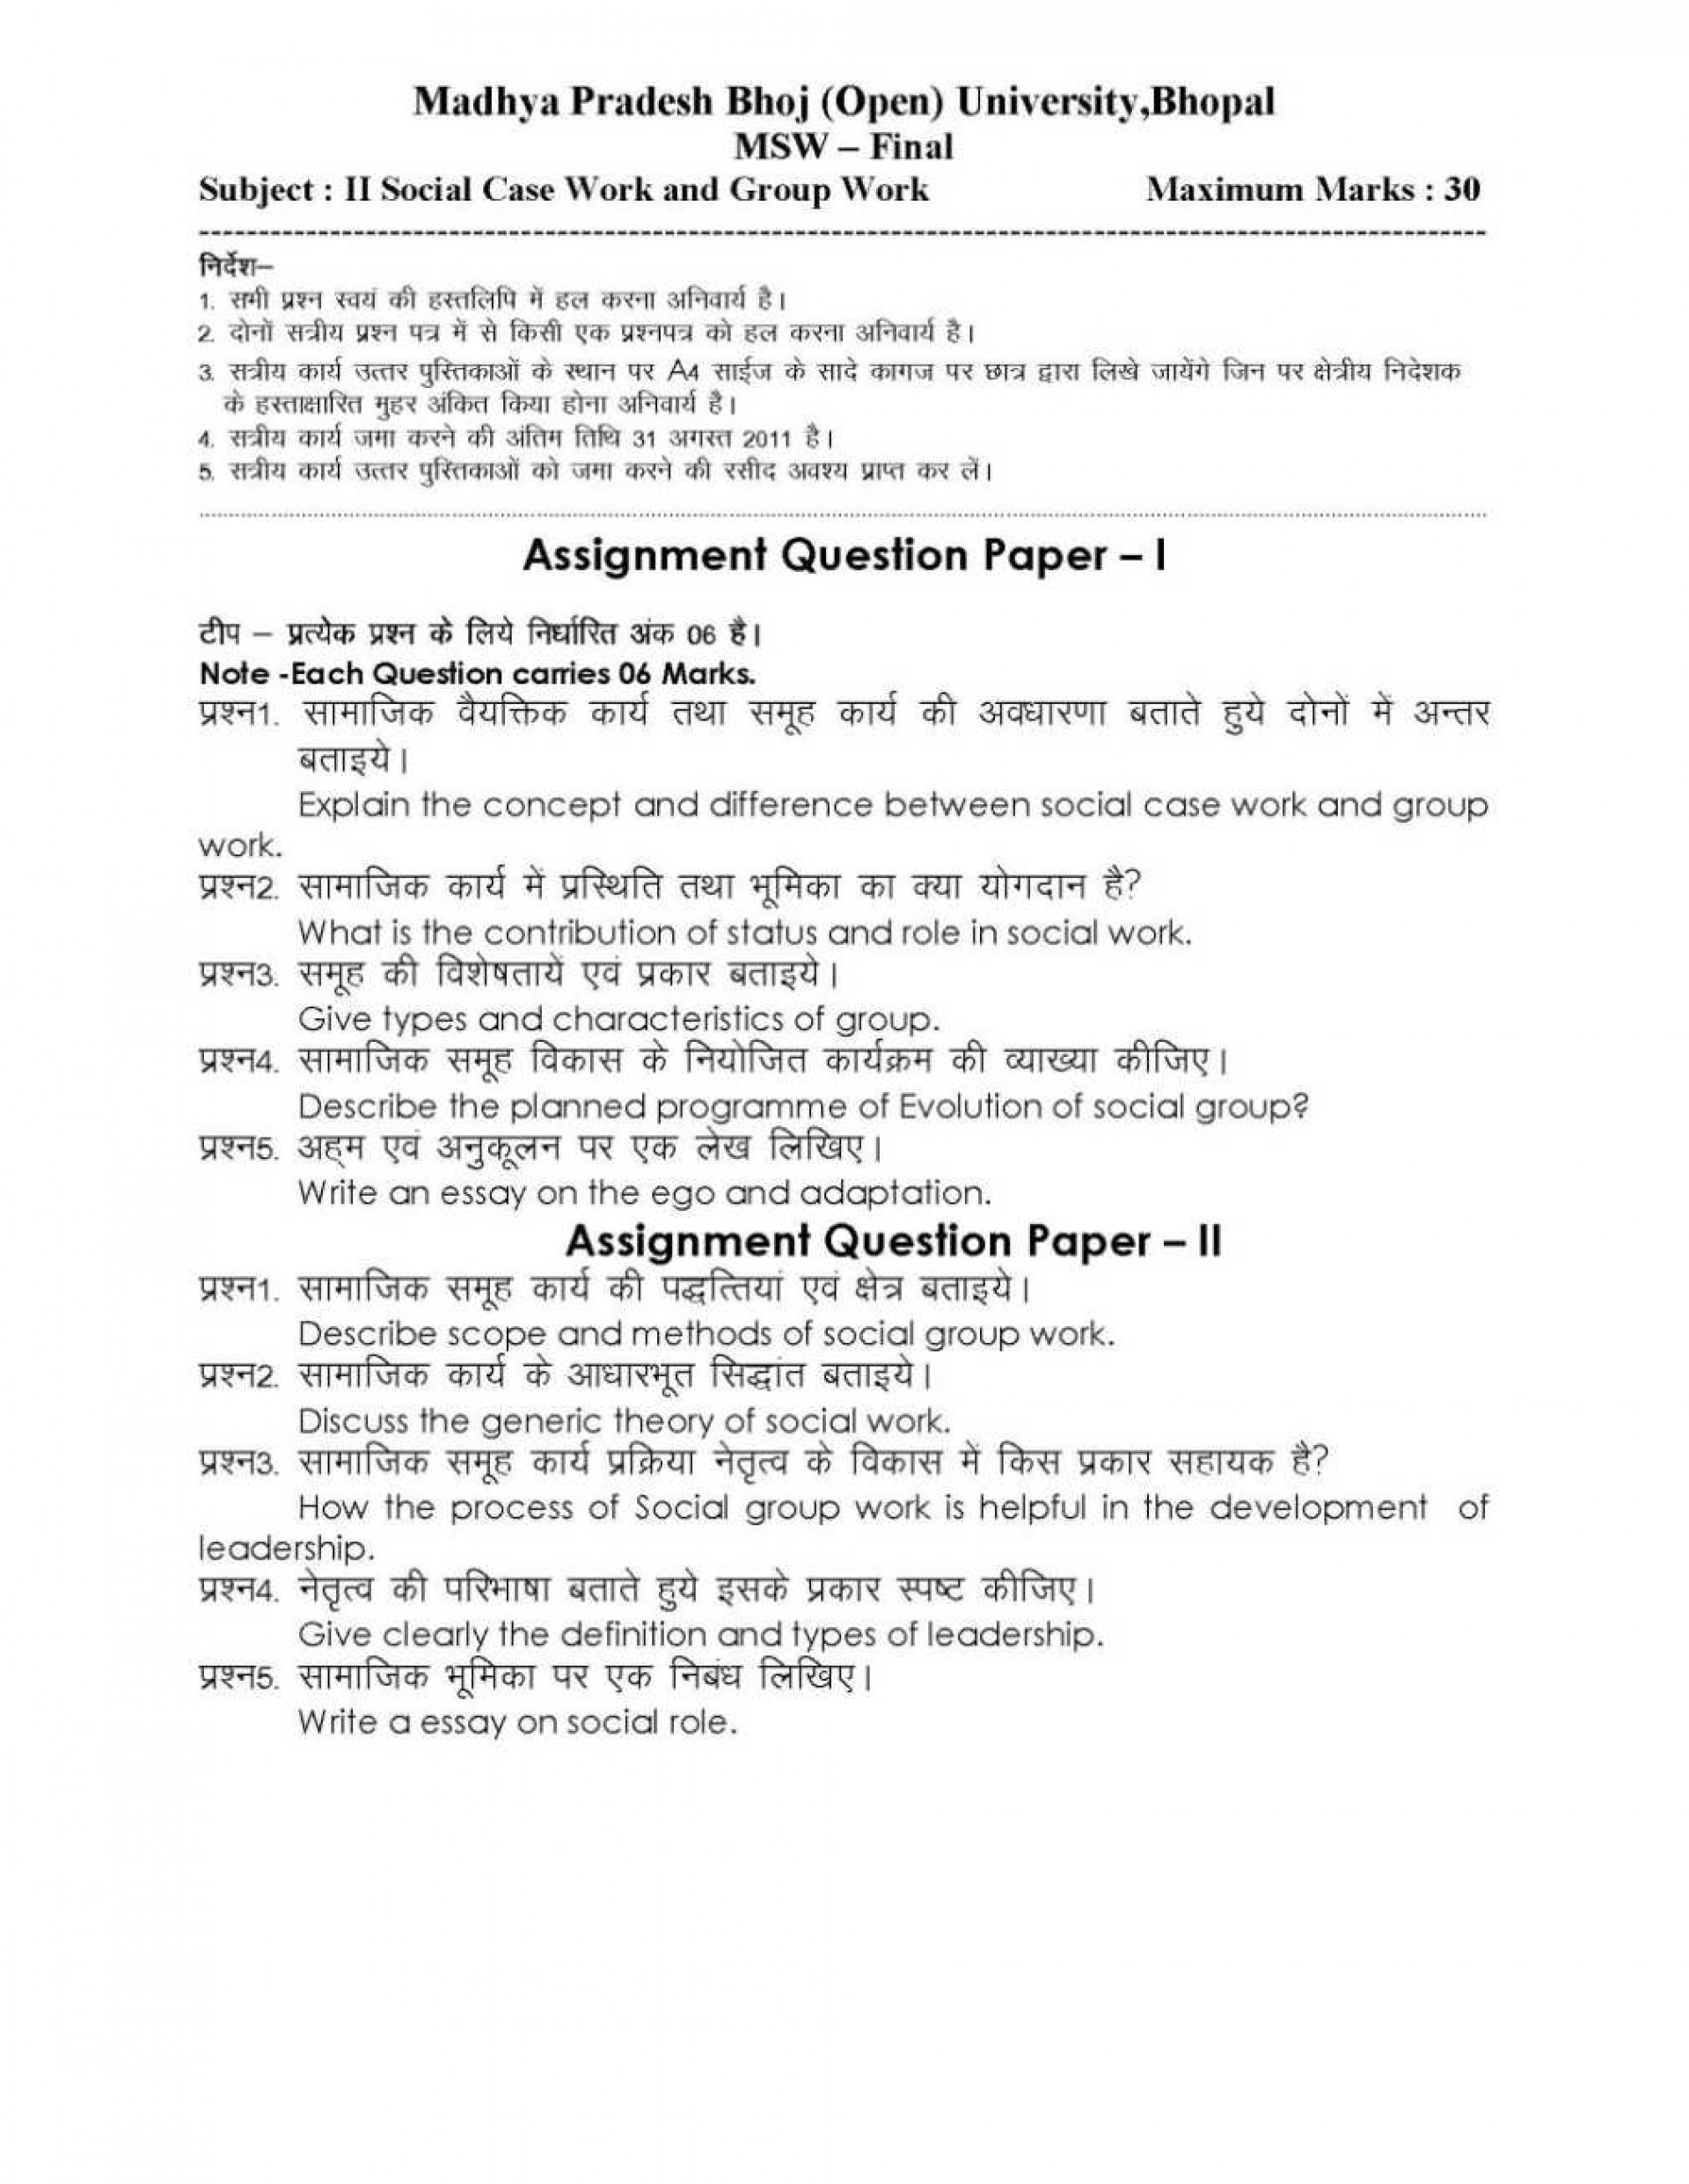 005 Bhoj University Bhopal Msw What Are The Qualities Of Good Leader Essay Formidable A Characteristics Pdf Introduction Make 1920